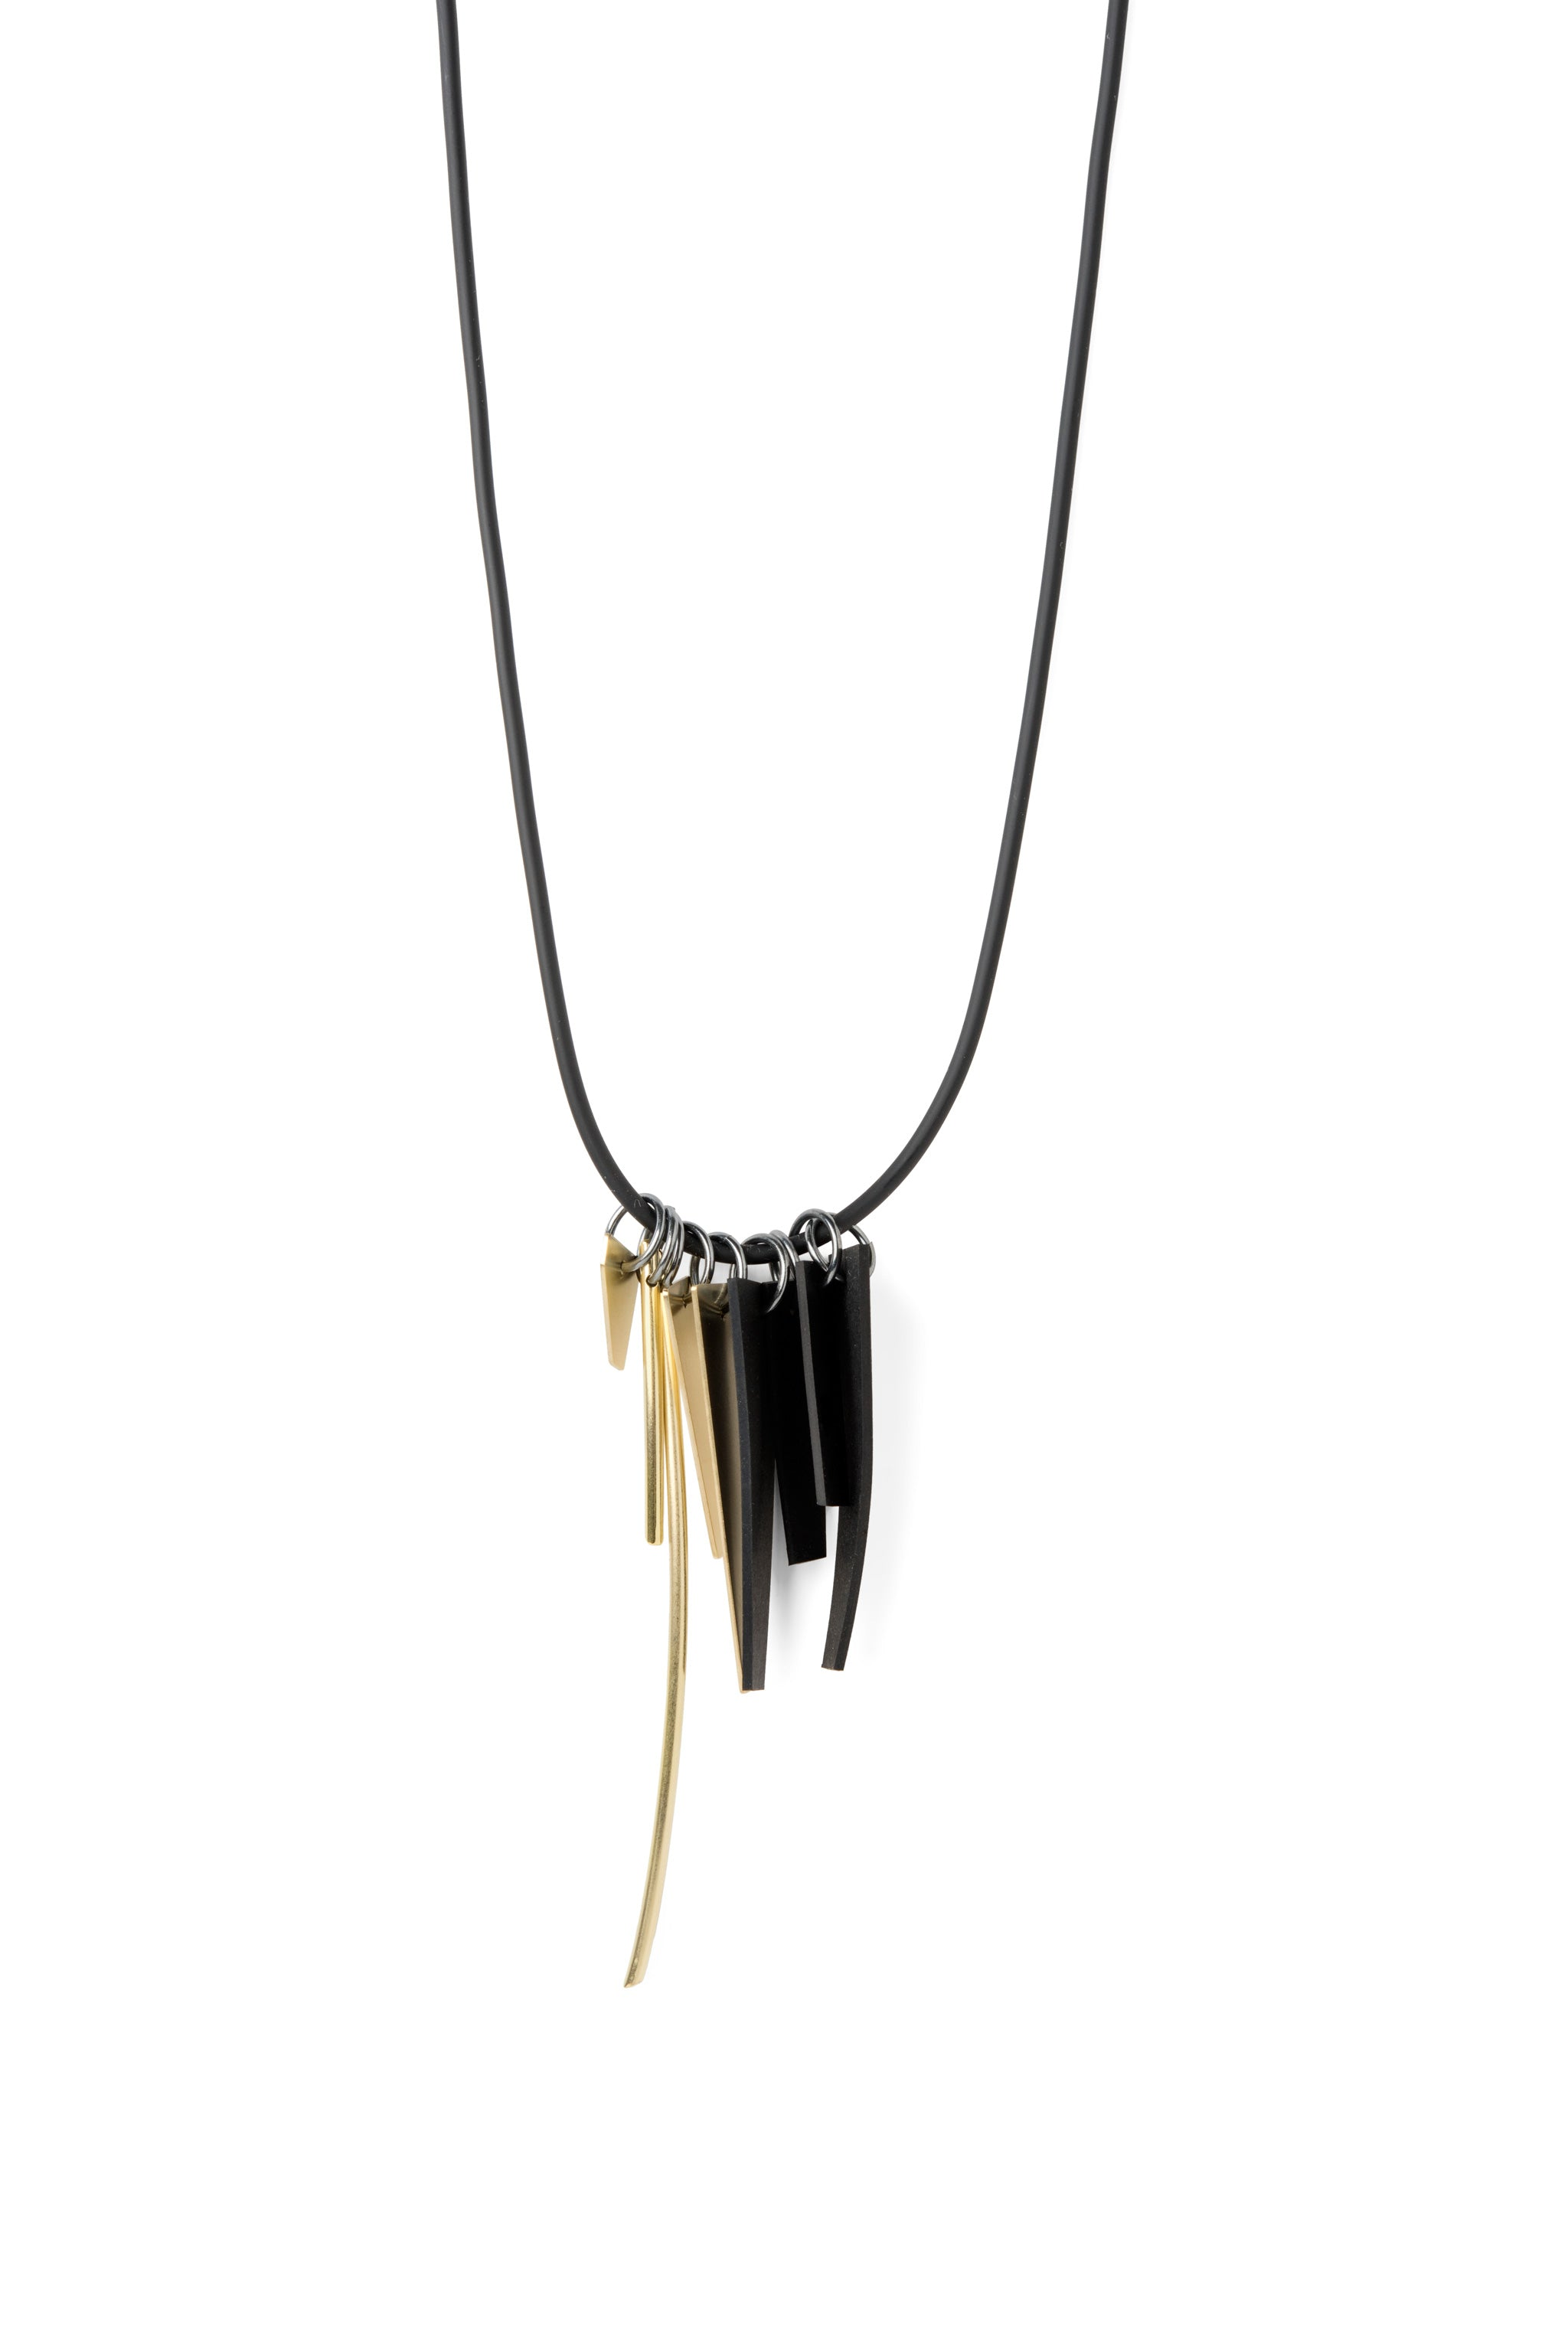 OUTLINE GOLD MIX NECKLACE